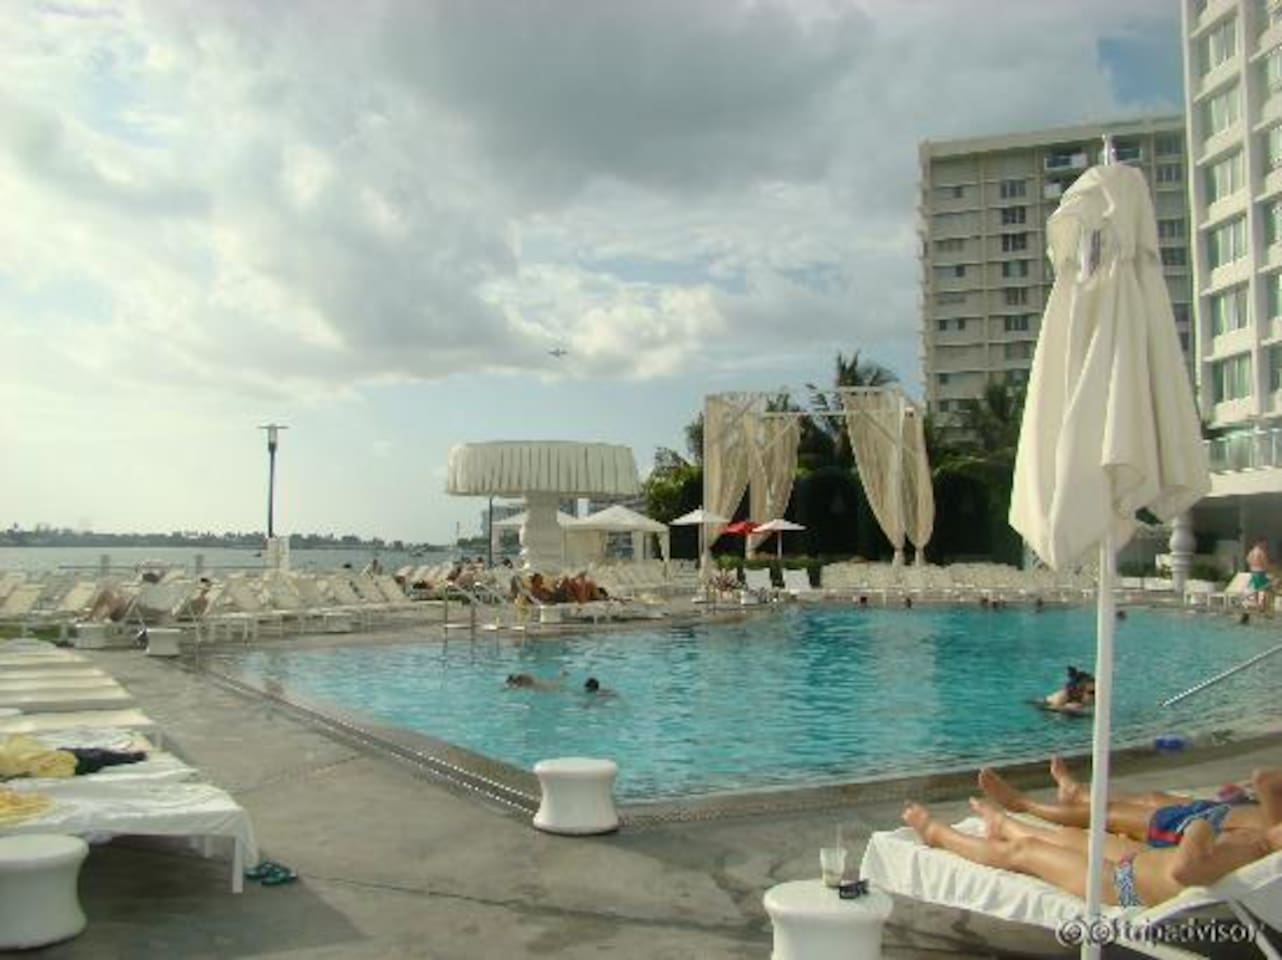 This the pool of the hotel.